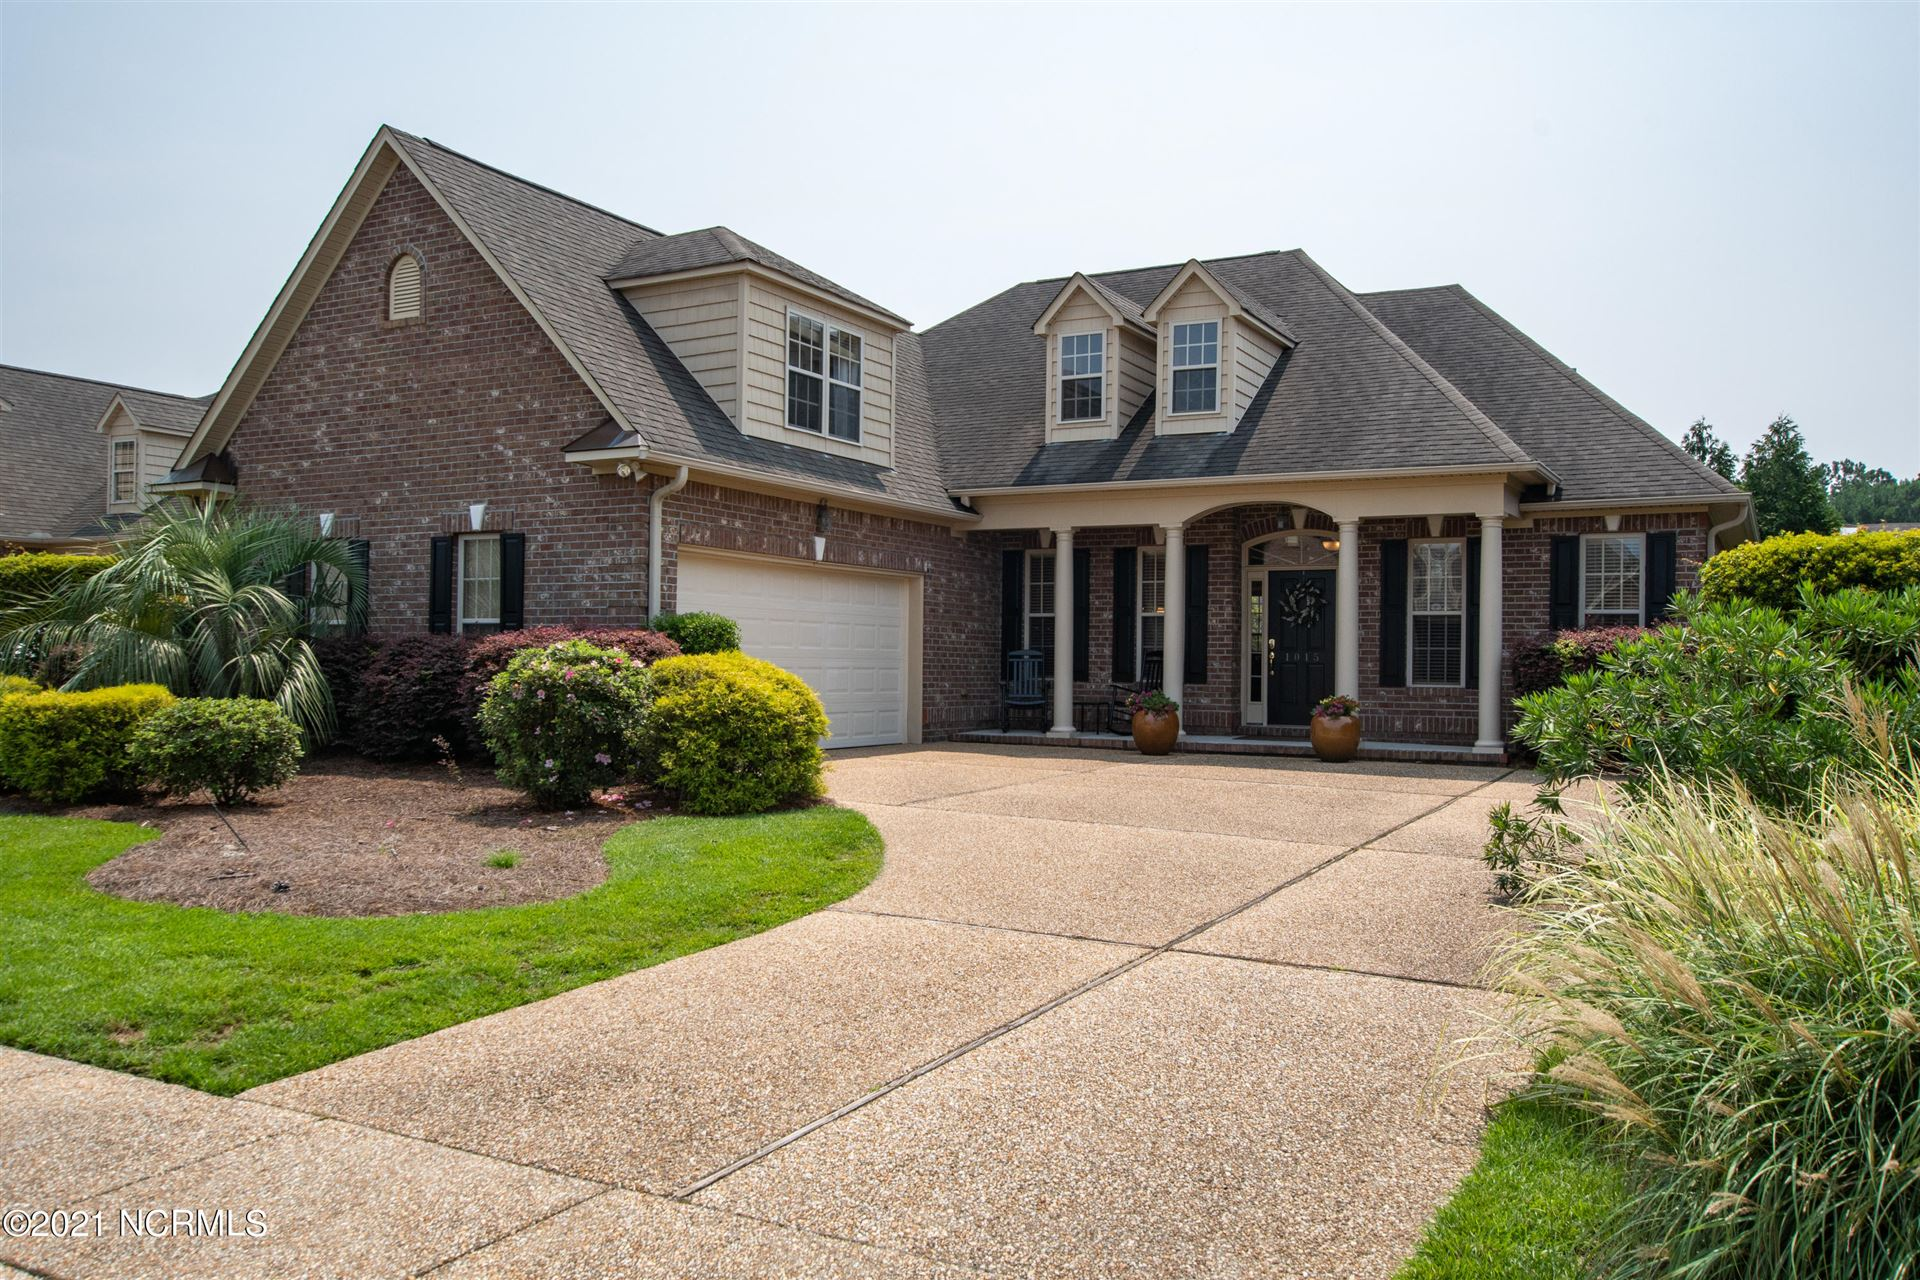 Photo for 1015 Fanning Court, Leland, NC 28451 (MLS # 100282584)